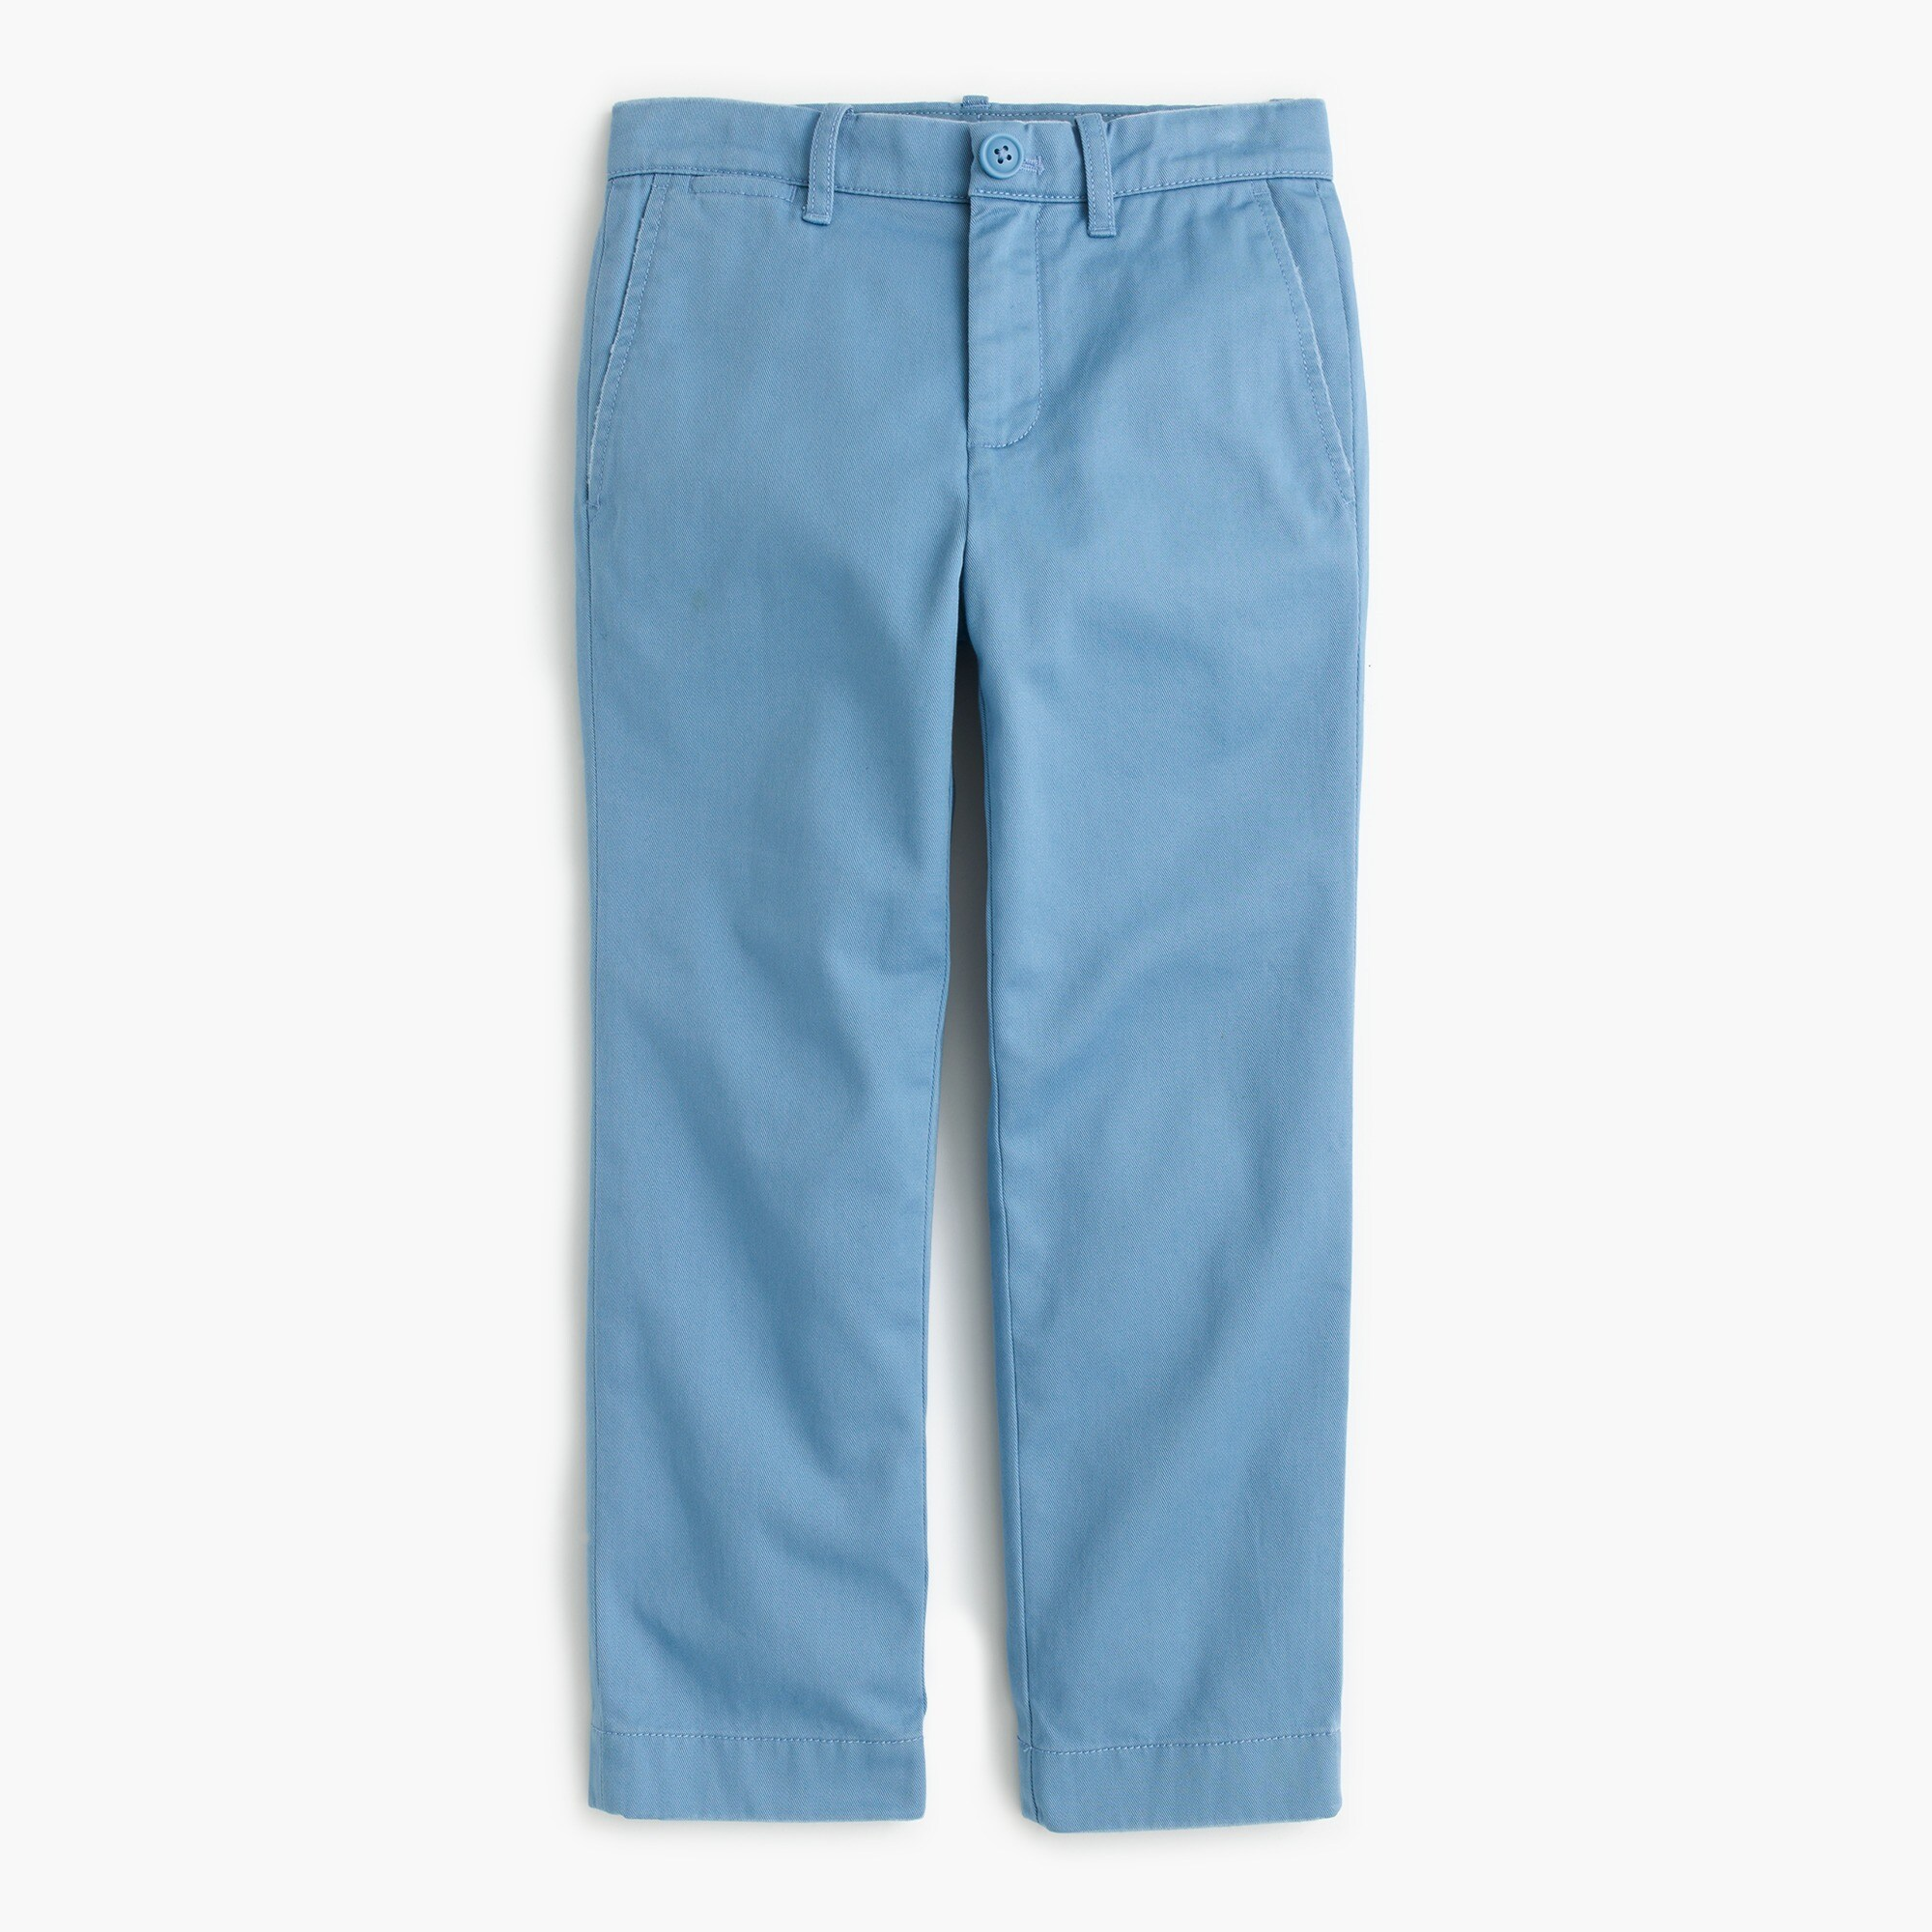 Image 1 for Boys' chino pant in slim fit